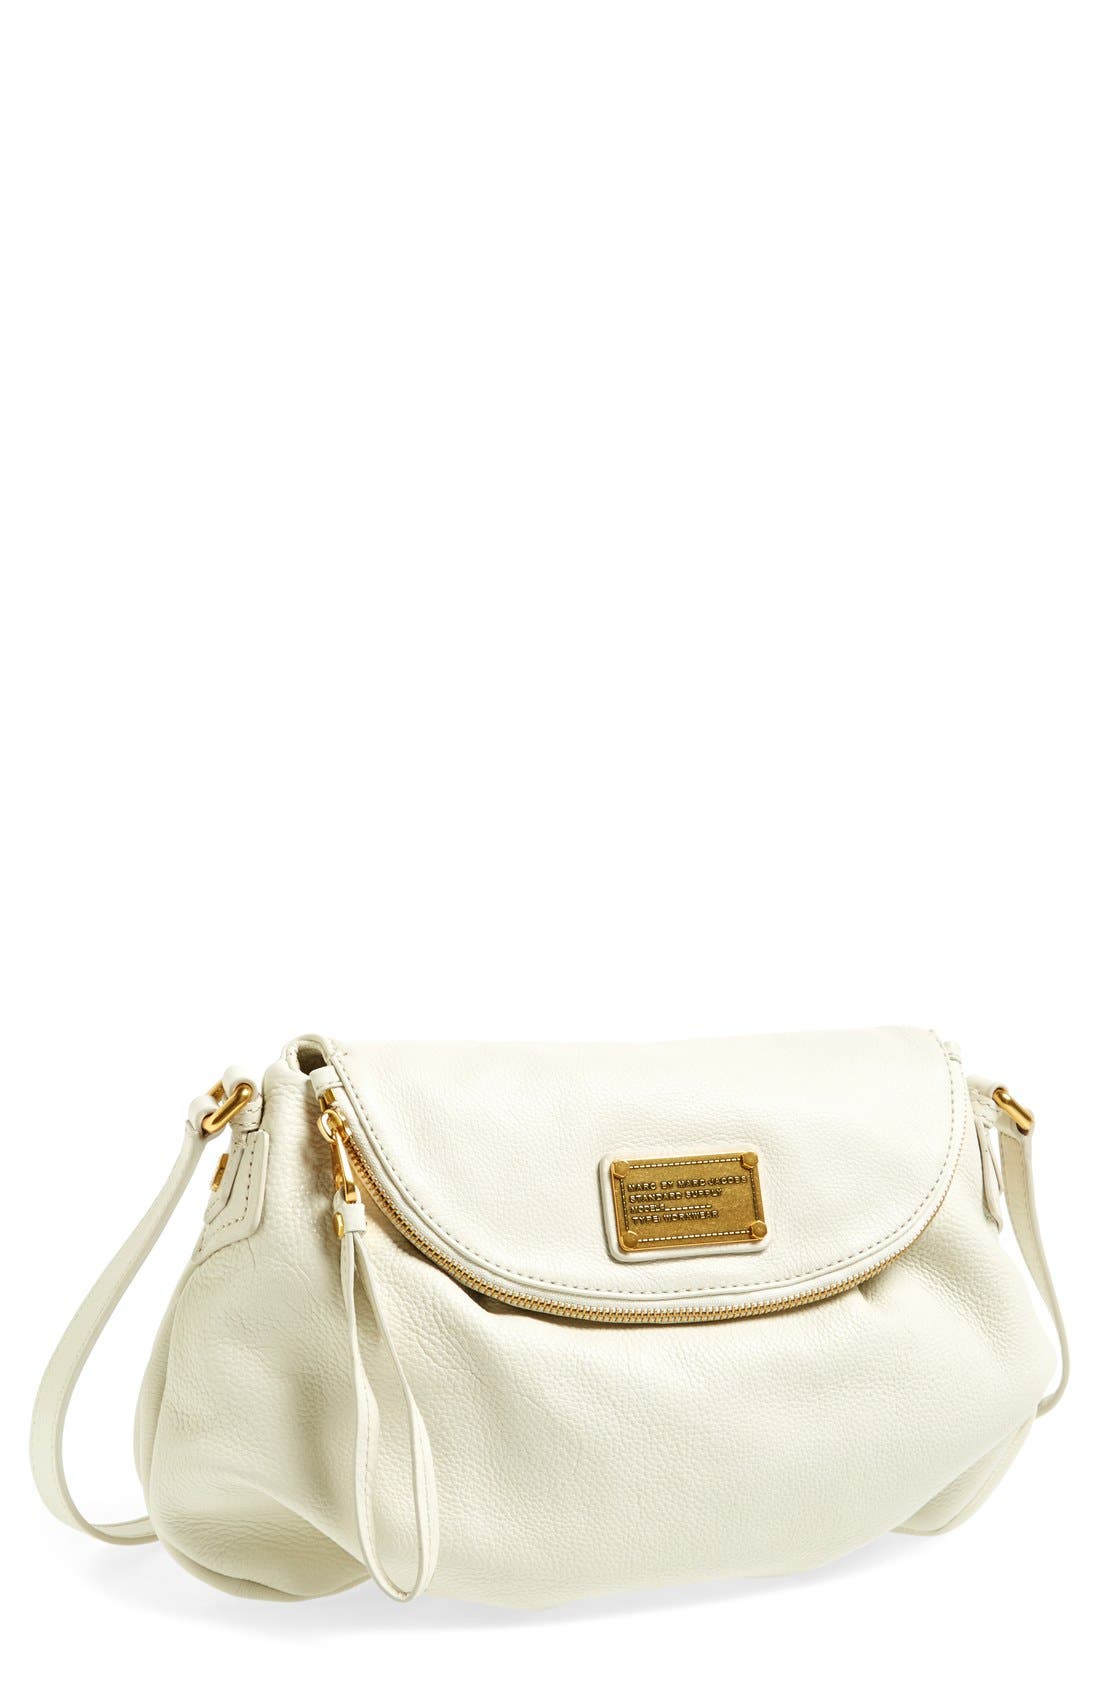 MARC BY MARC JACOBS 'Classic Q - Natasha' Crossbody Bag,                             Main thumbnail 5, color,